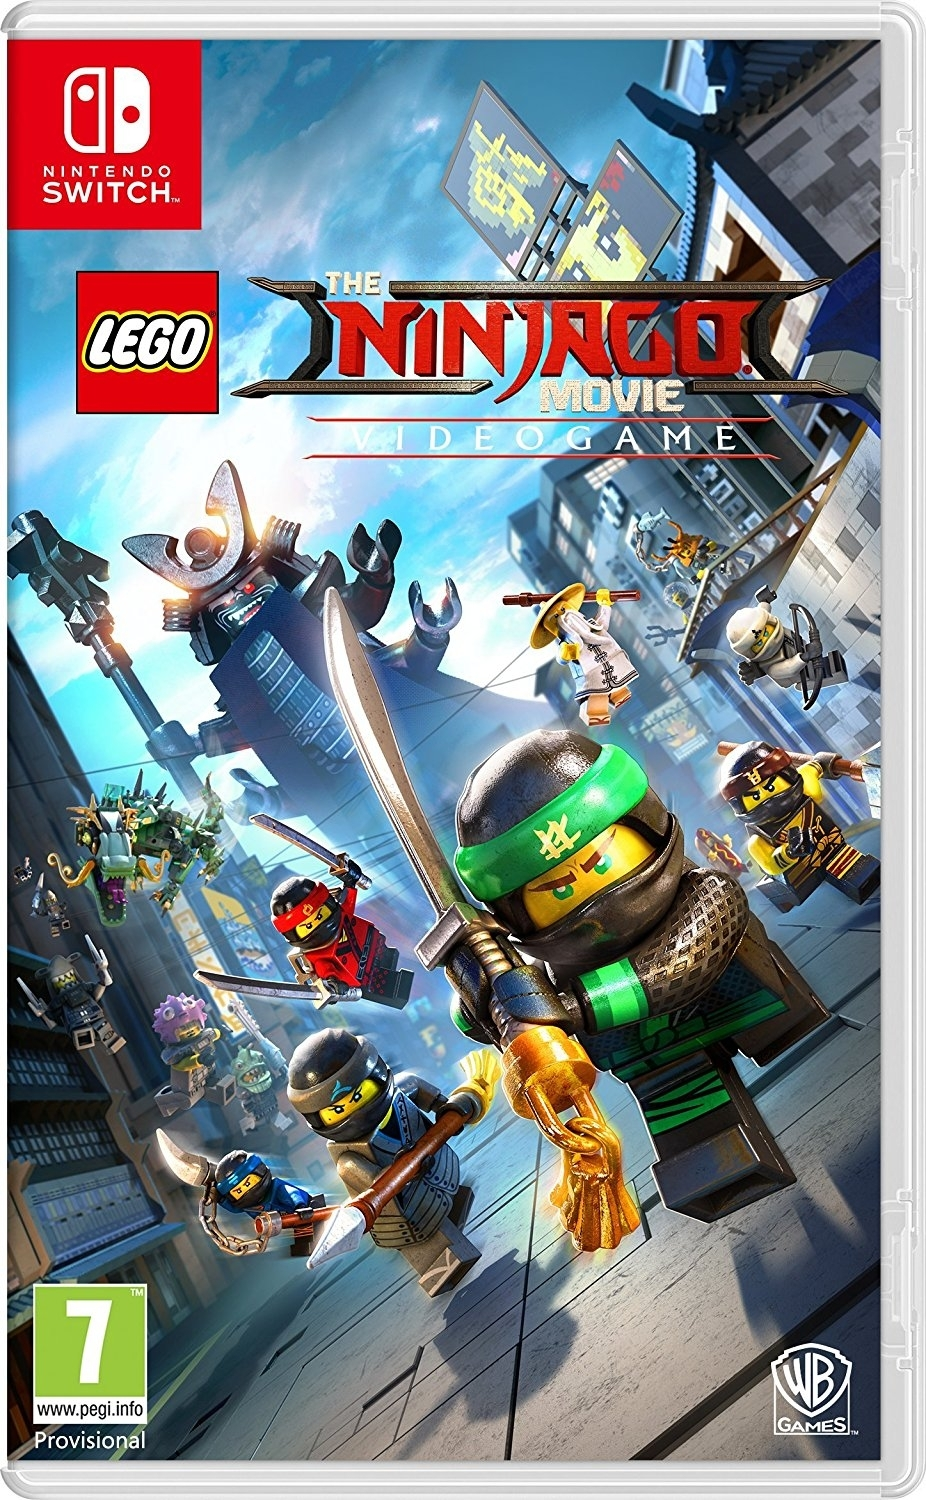 LEGO Ninjago The Movie Gra Wideo PL Nintendo Switch